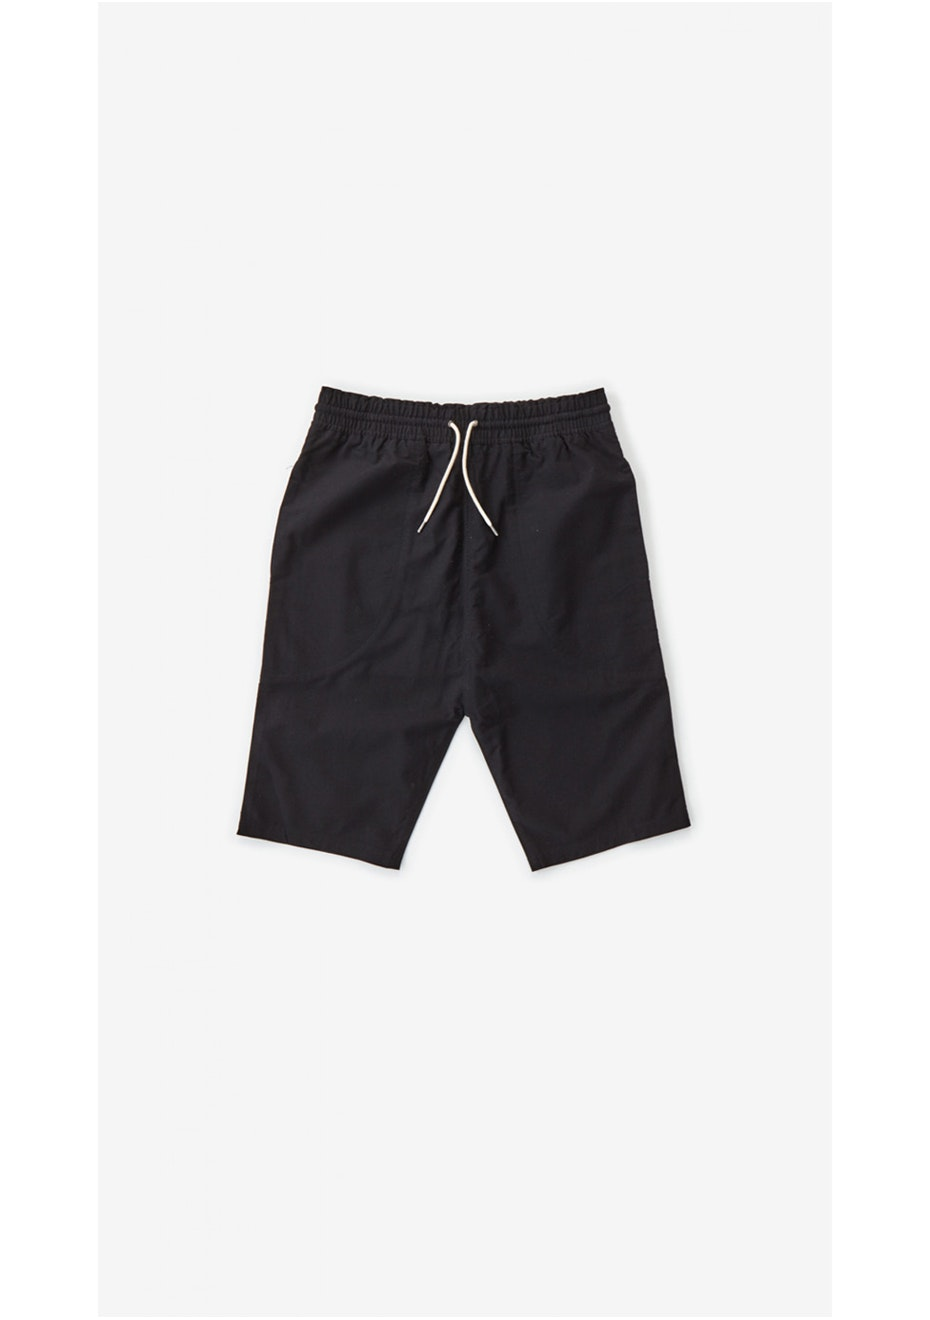 I Love Ugly - Zespy Short Black Oxford